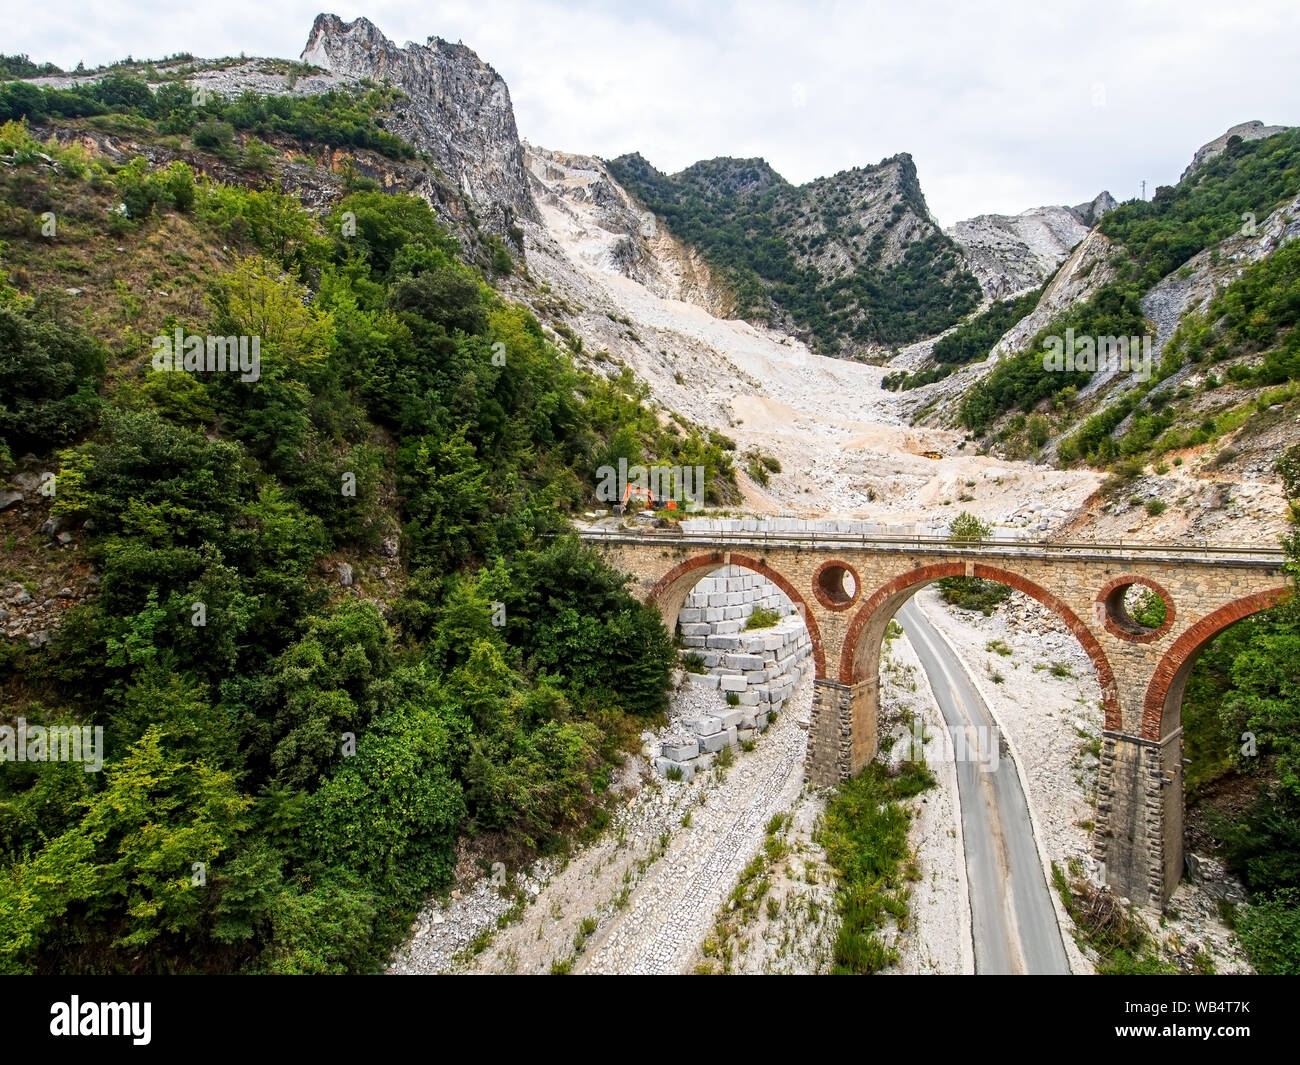 Ponti di Vara bridges in Carrara marble quarries, Tuscany, Italy. In the Apuan Alps. Quarrying marble stone is an important industry. Stock Photo